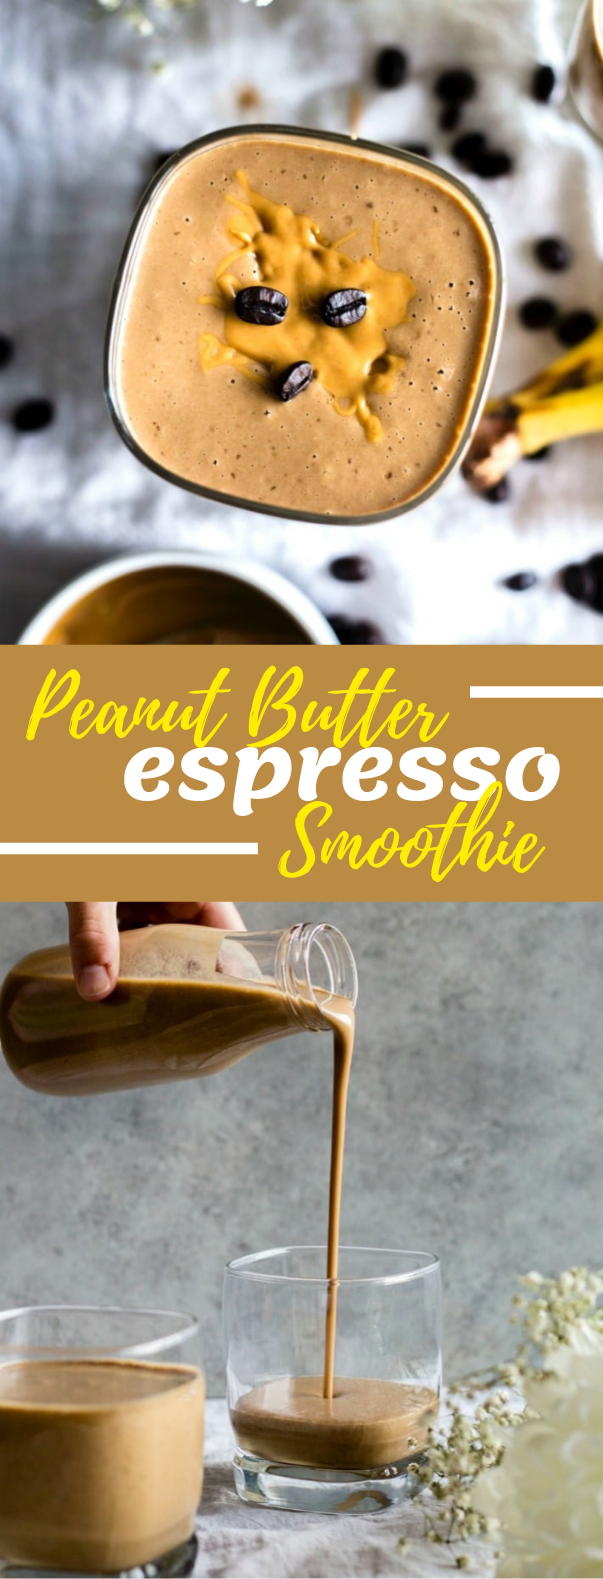 Peanut Butter Espresso Smoothie #drink #hotdrink